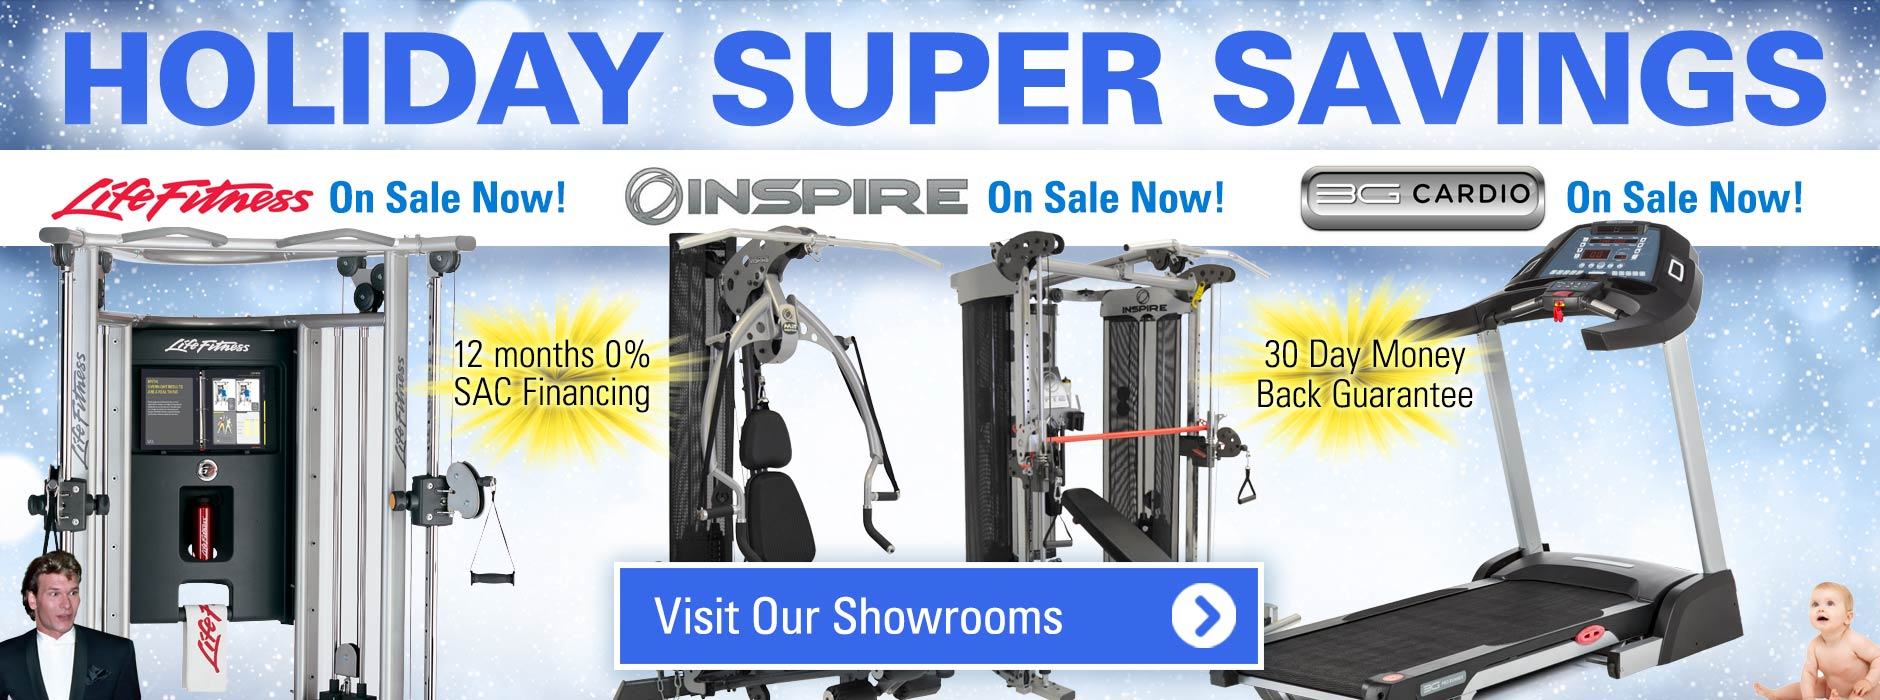 At Home Fitness Holiday Super Sale